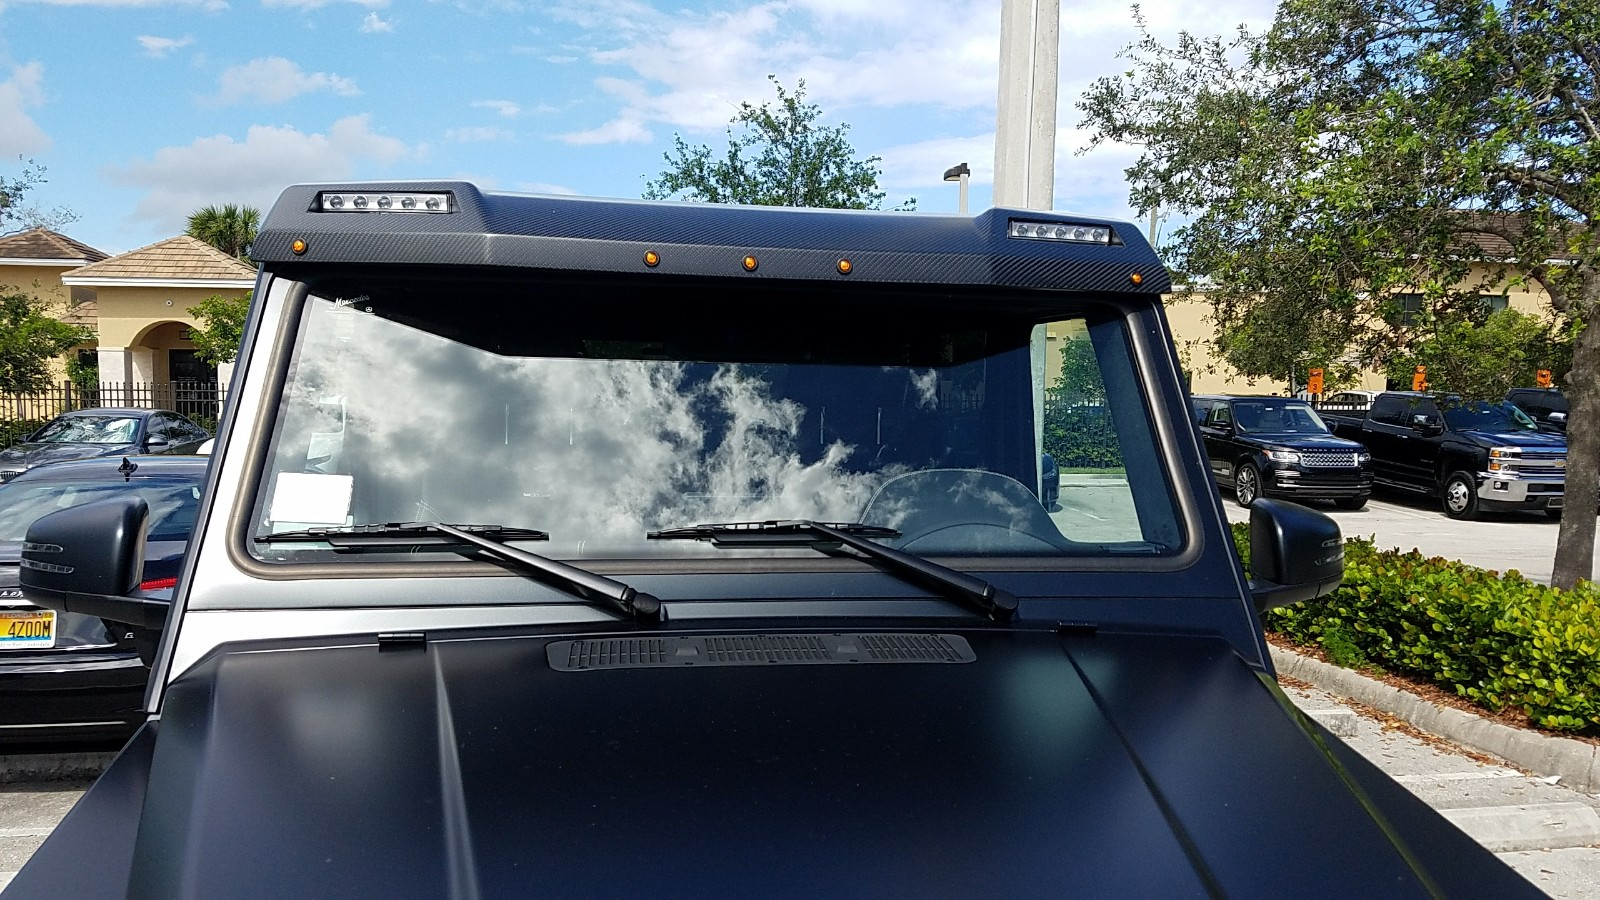 1990 2016 mercedes g class roof led bar wdrl lights be the first to review this product aloadofball Choice Image